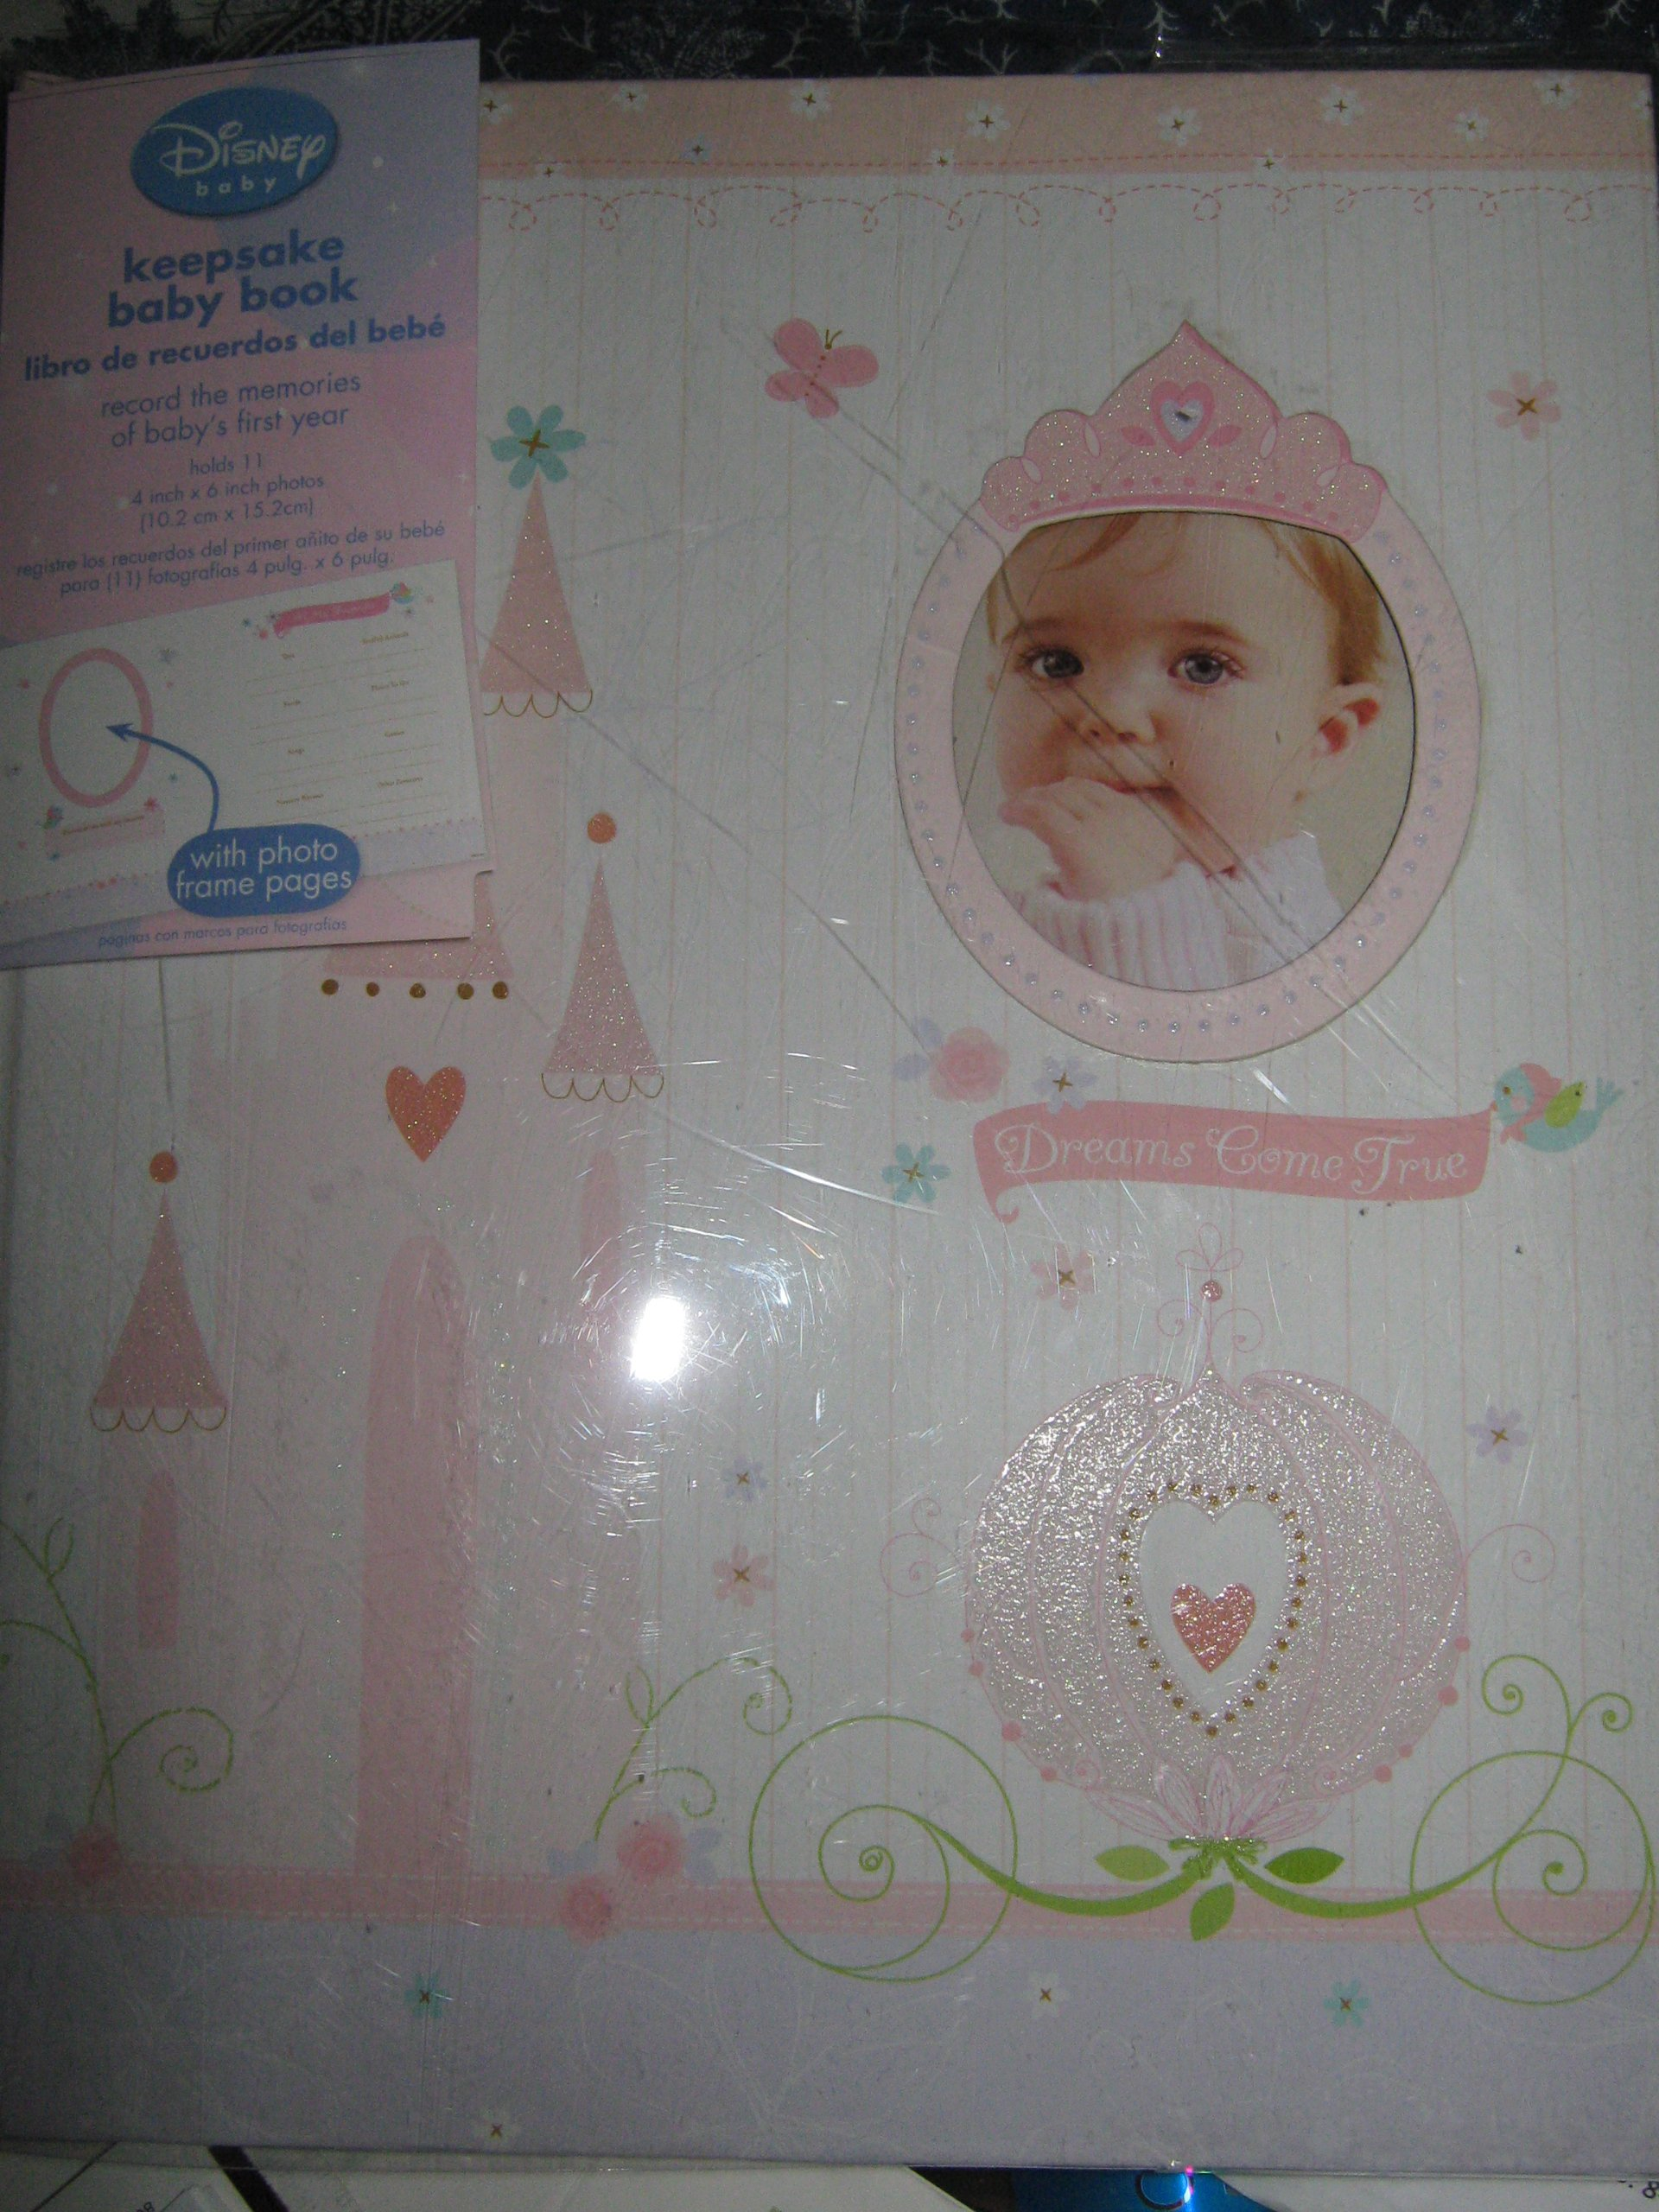 Disney Princess Keepsake Baby's First Year Memory Book for Baby Girl ''Dreams Come True''